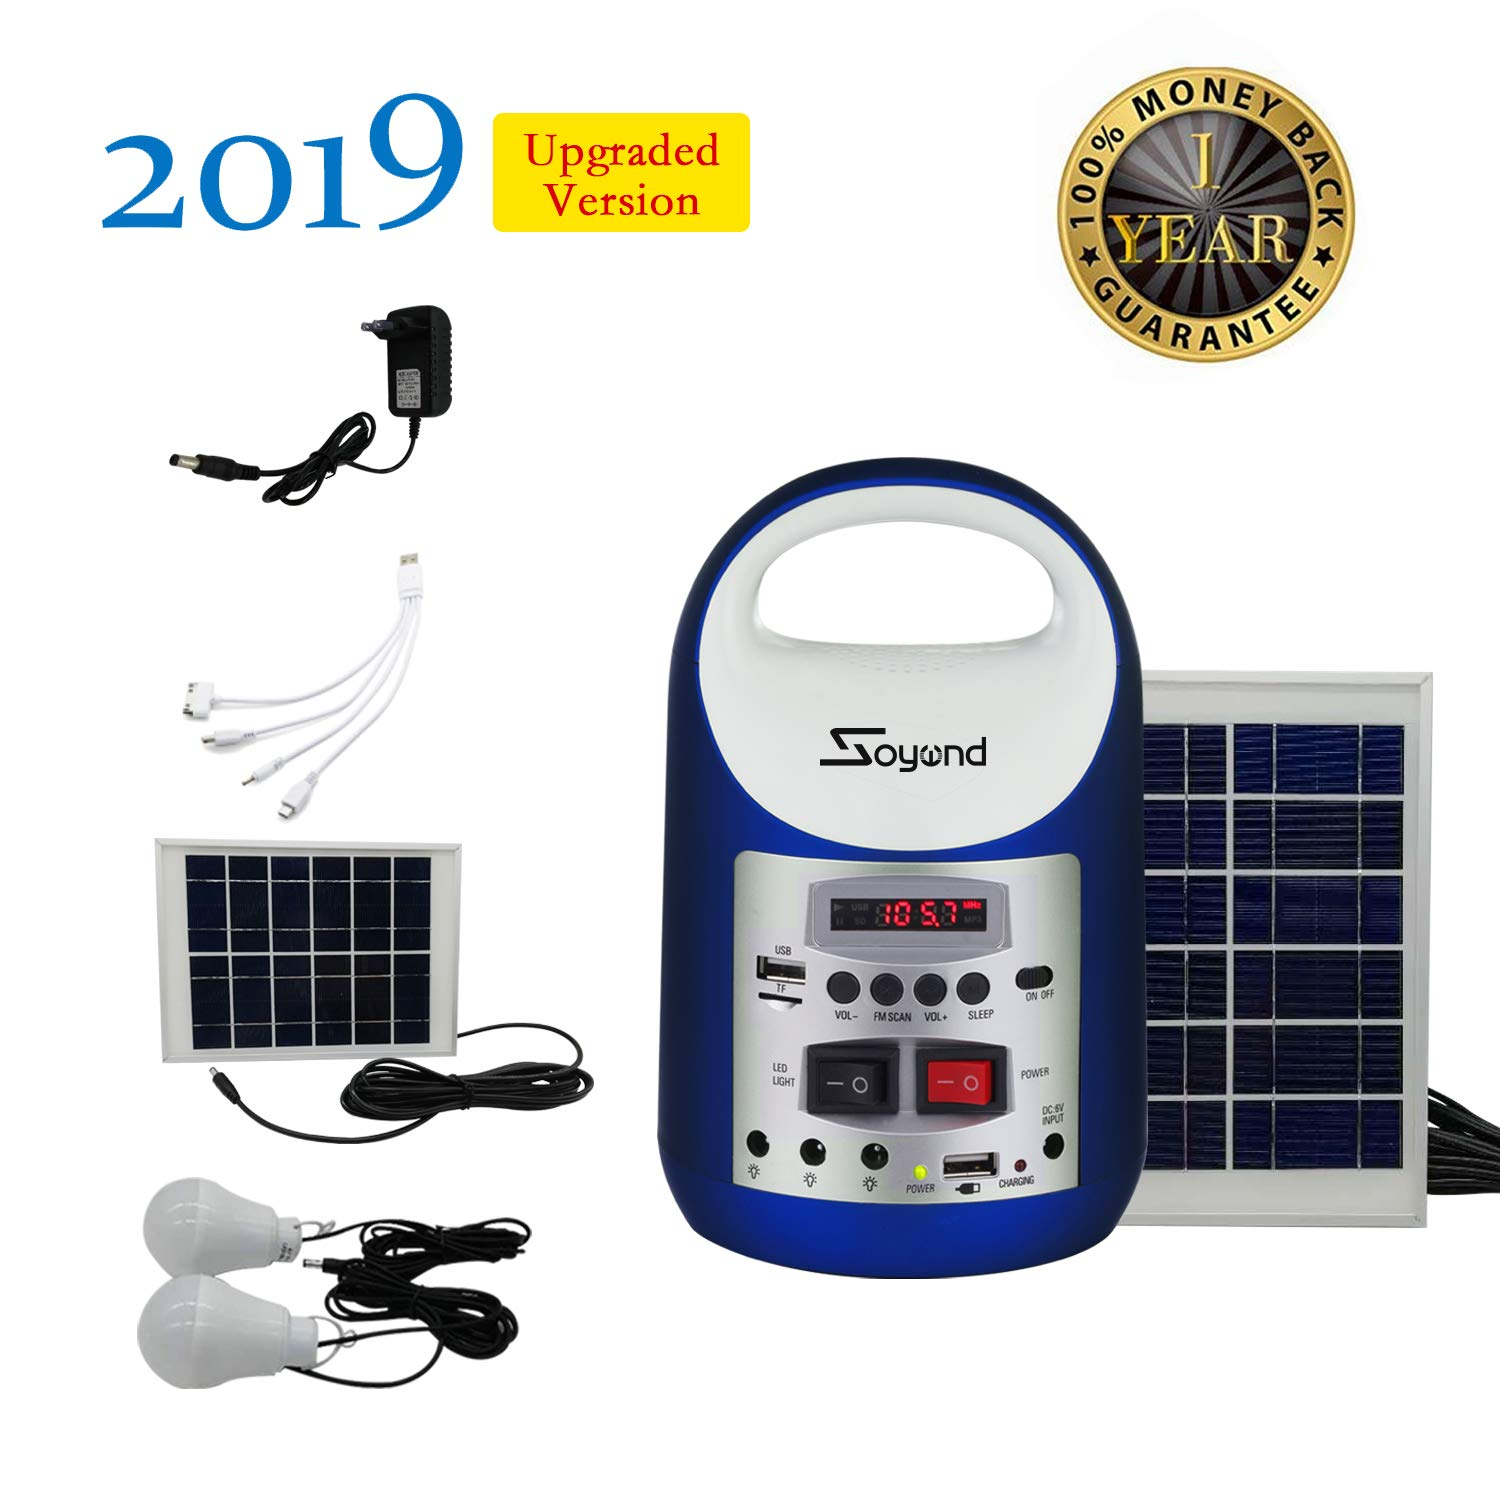 soyond Portable Solar Generator with Solar Panel Solar Powered Generator Inverter Small Basic Portable Electric Generator Kit by soyond (Image #7)